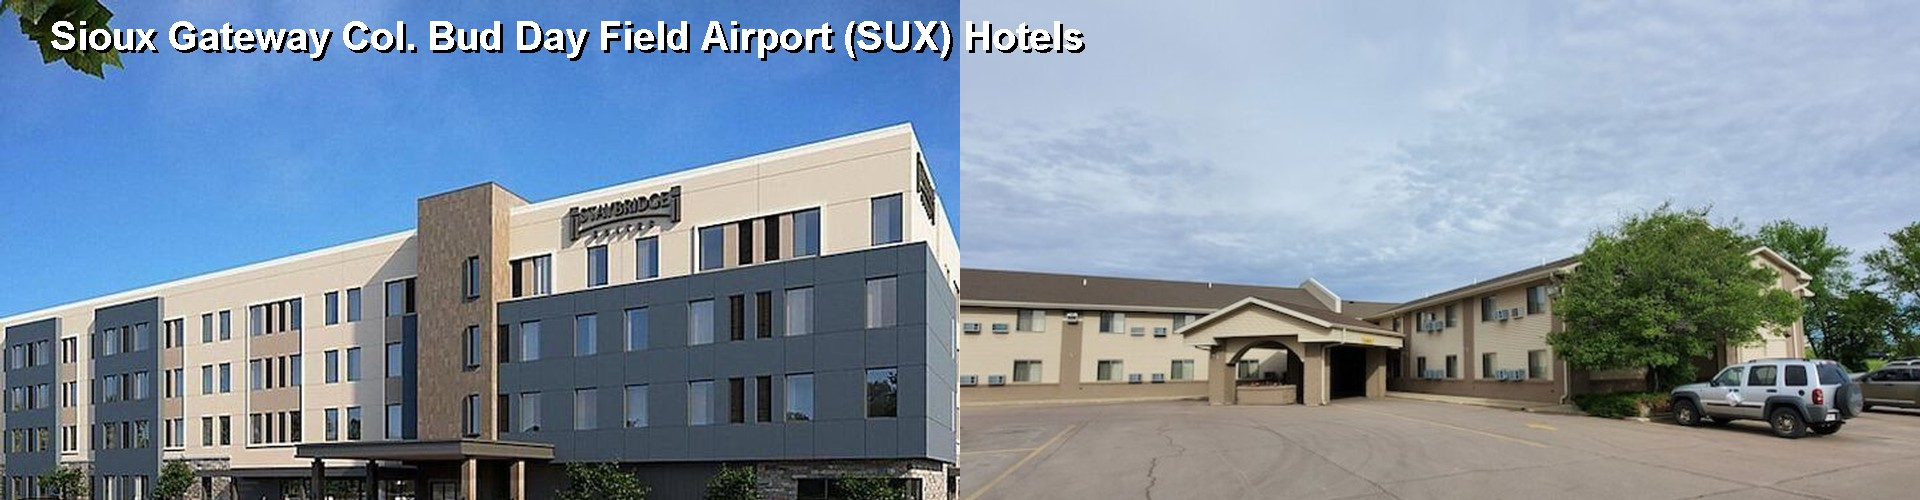 5 Best Hotels near Sioux Gateway Col. Bud Day Field Airport (SUX)